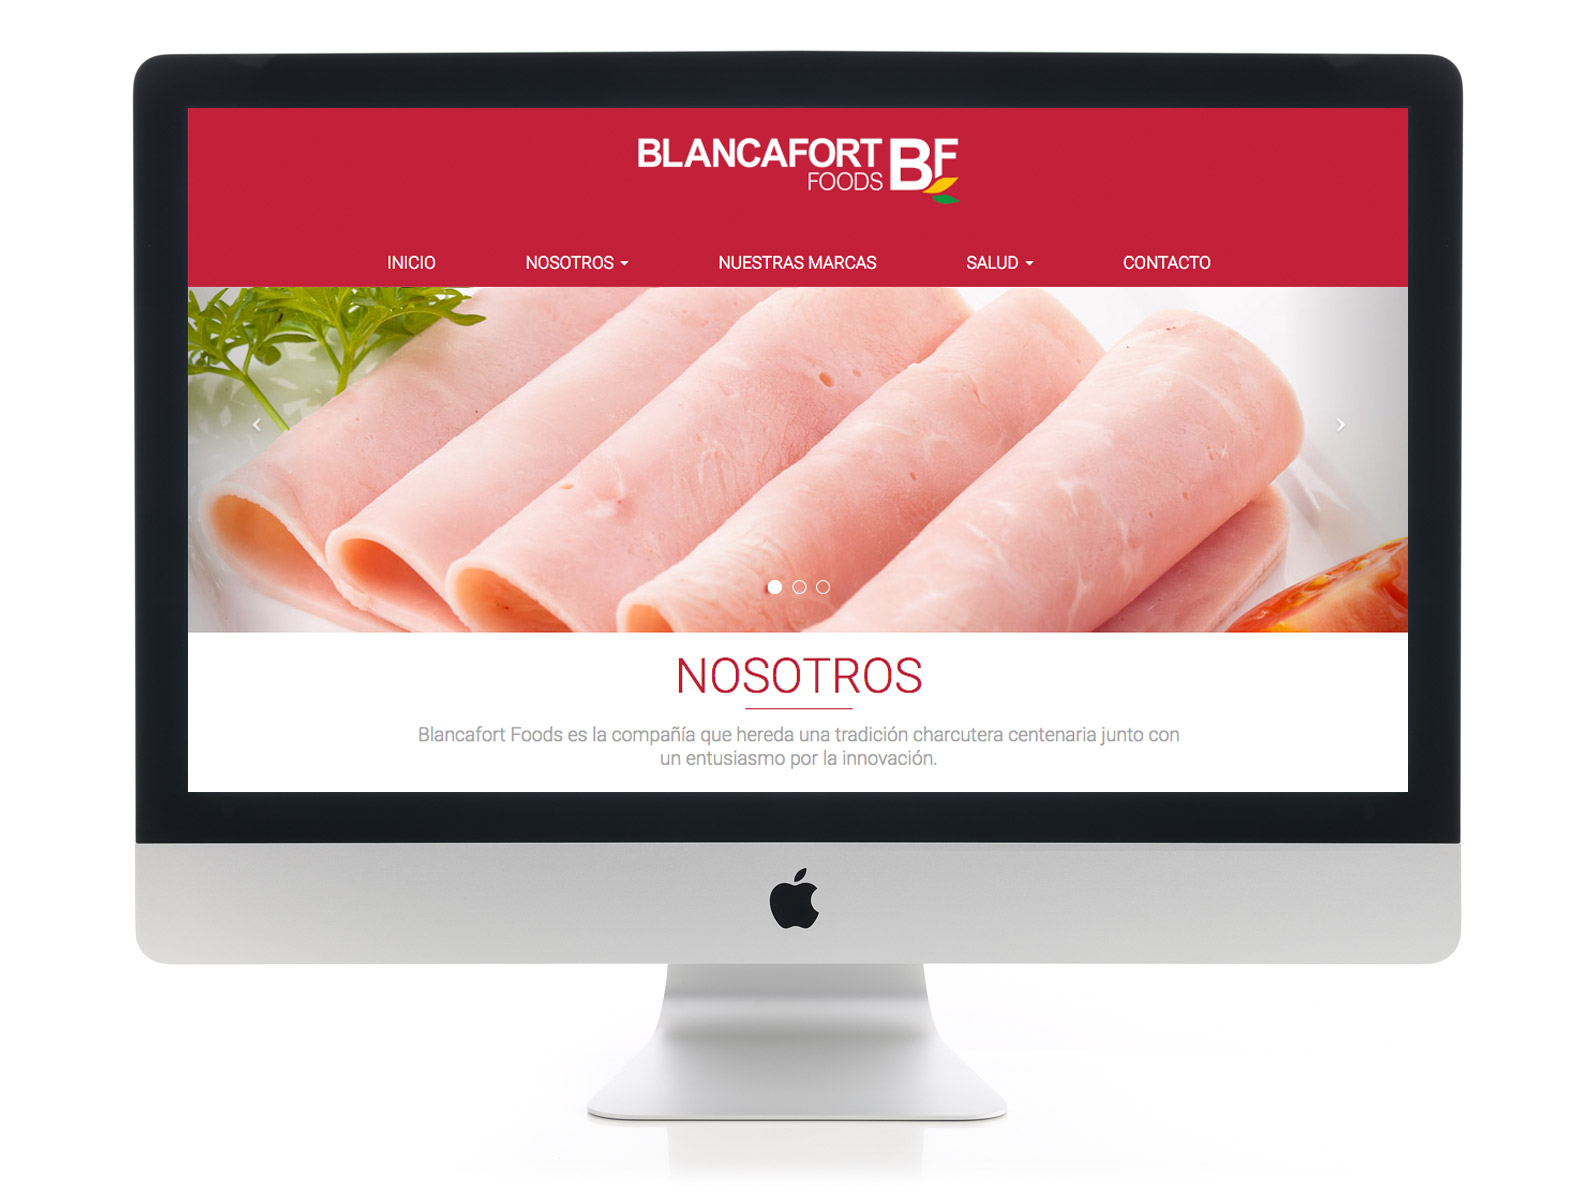 Blancafort Foods